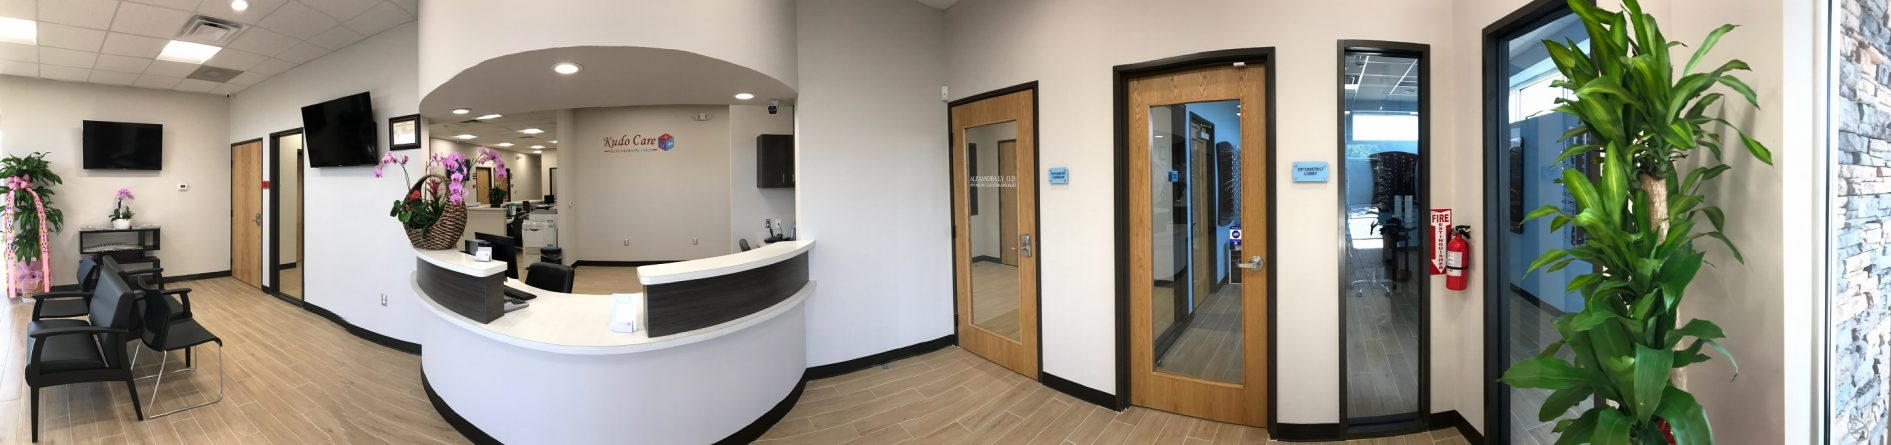 front-office-pano-e1511993612811